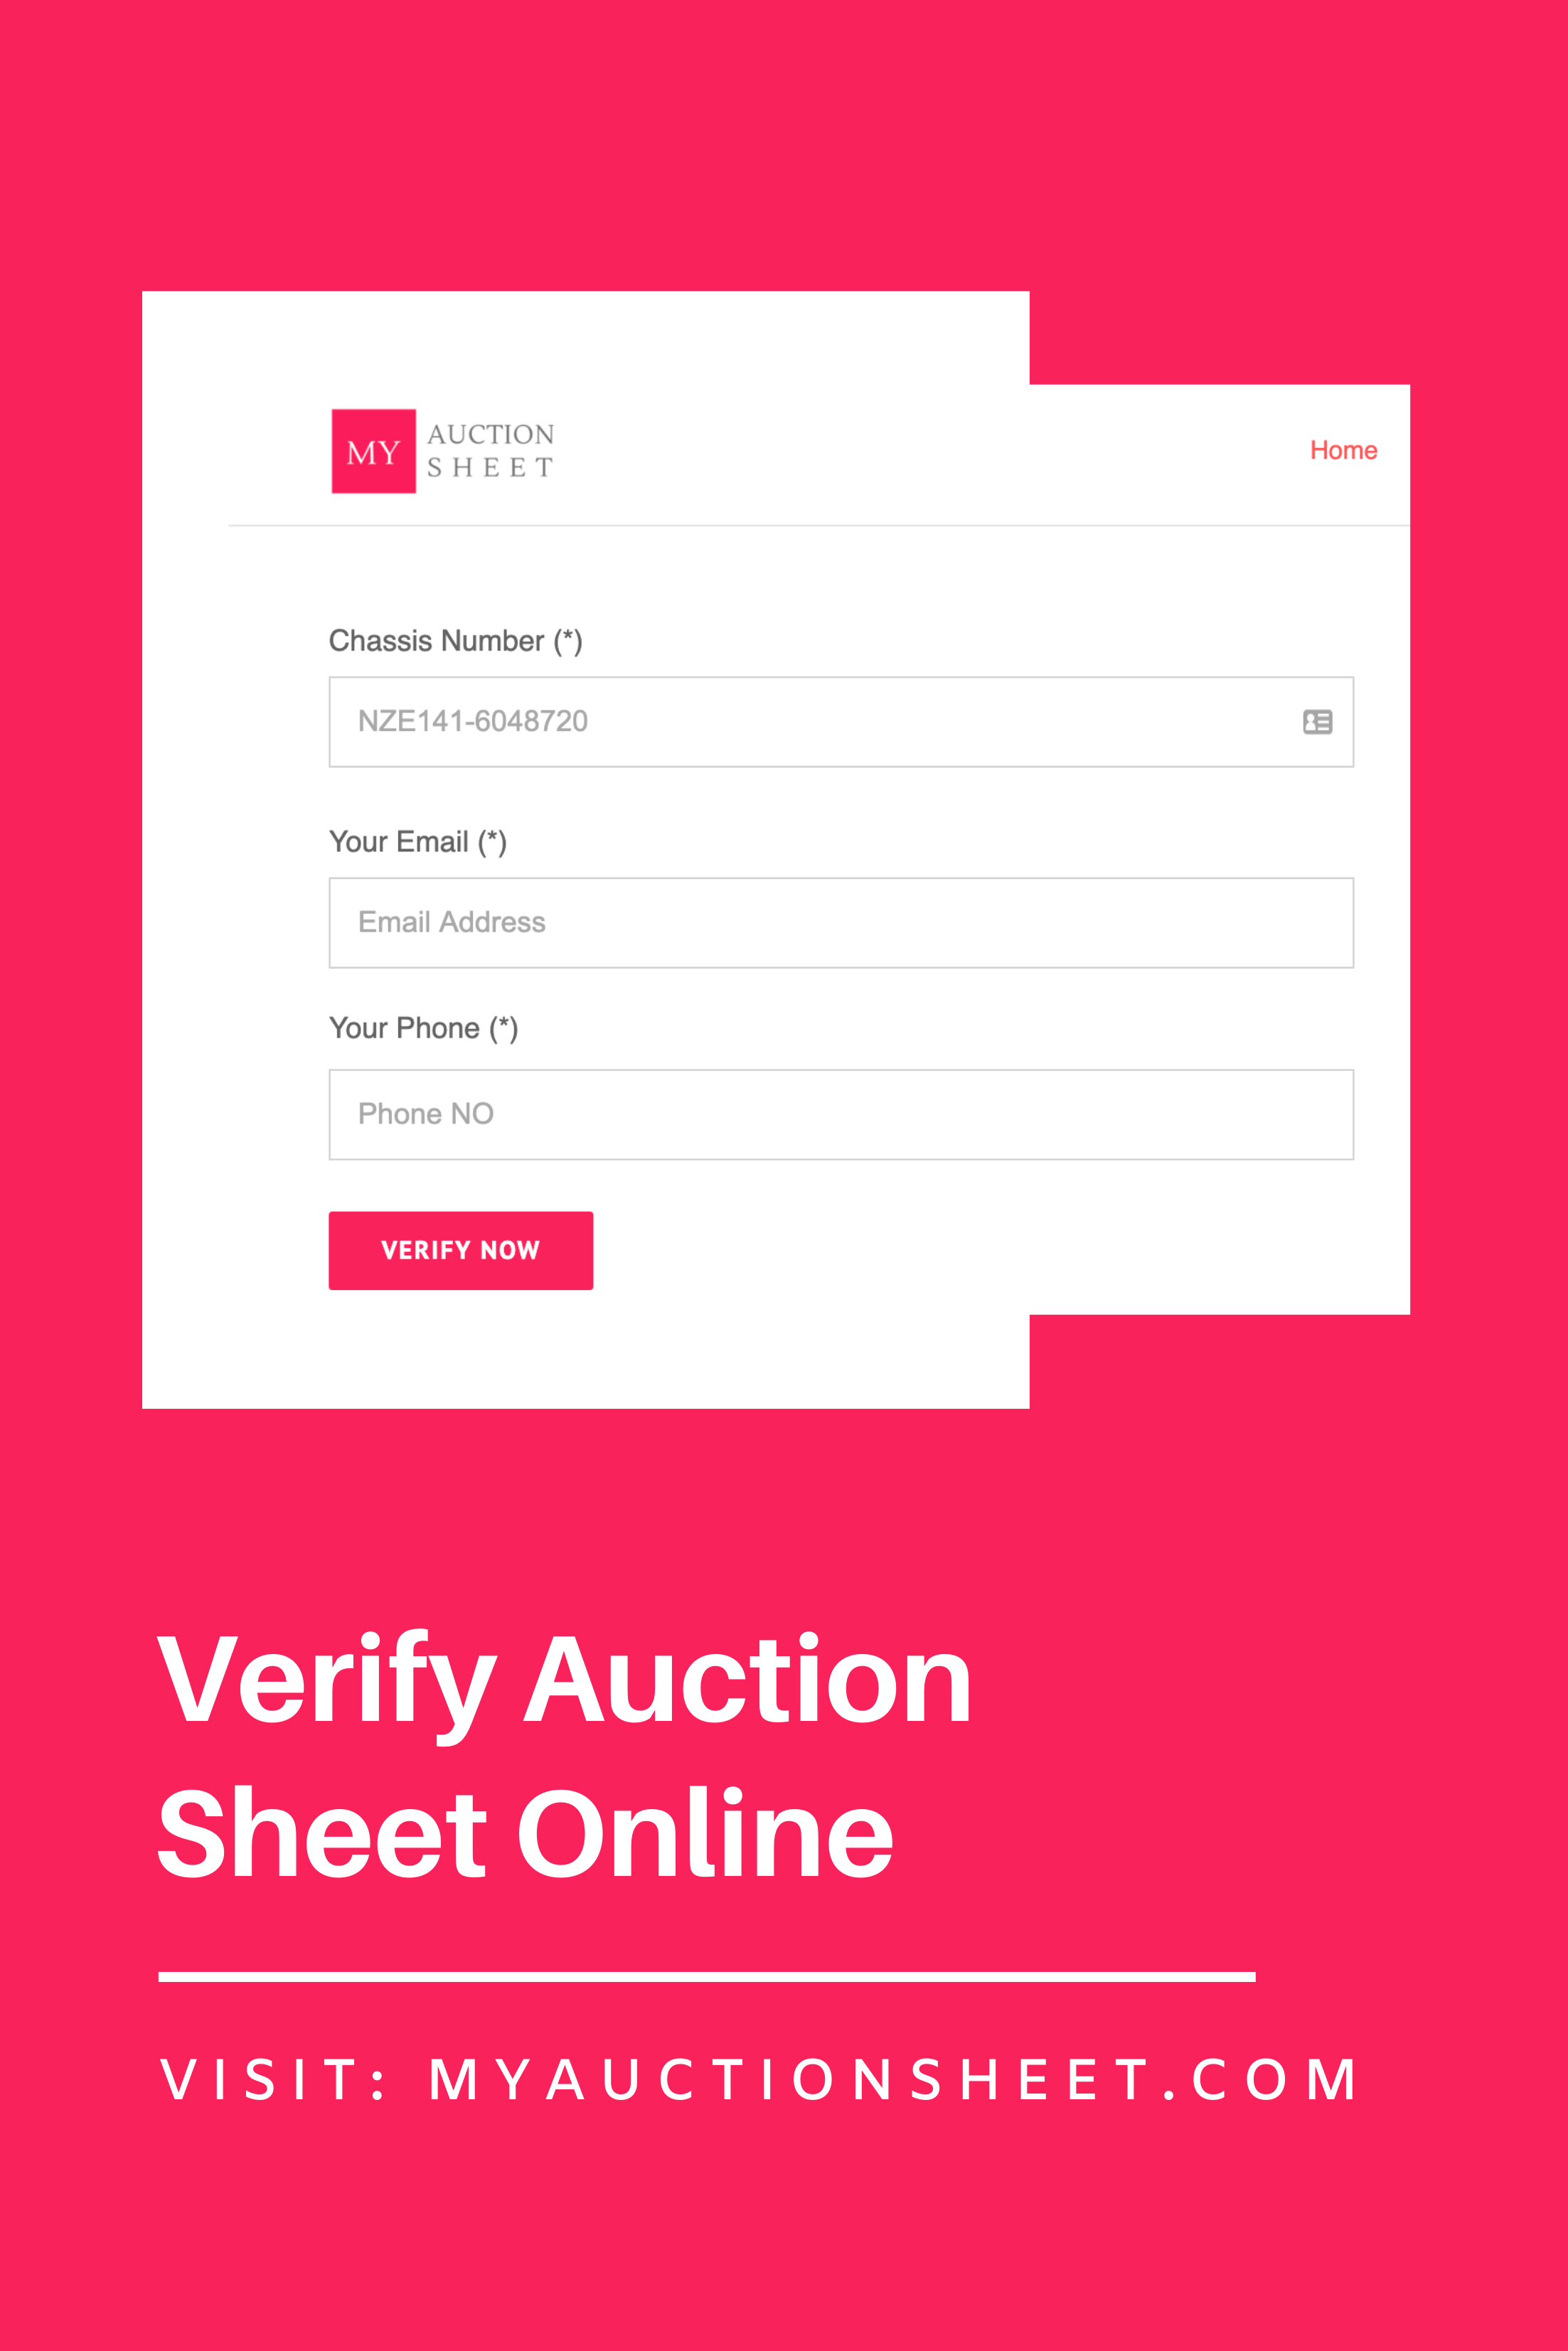 My Auction Sheet | Auction, Sheet, Japanese cars